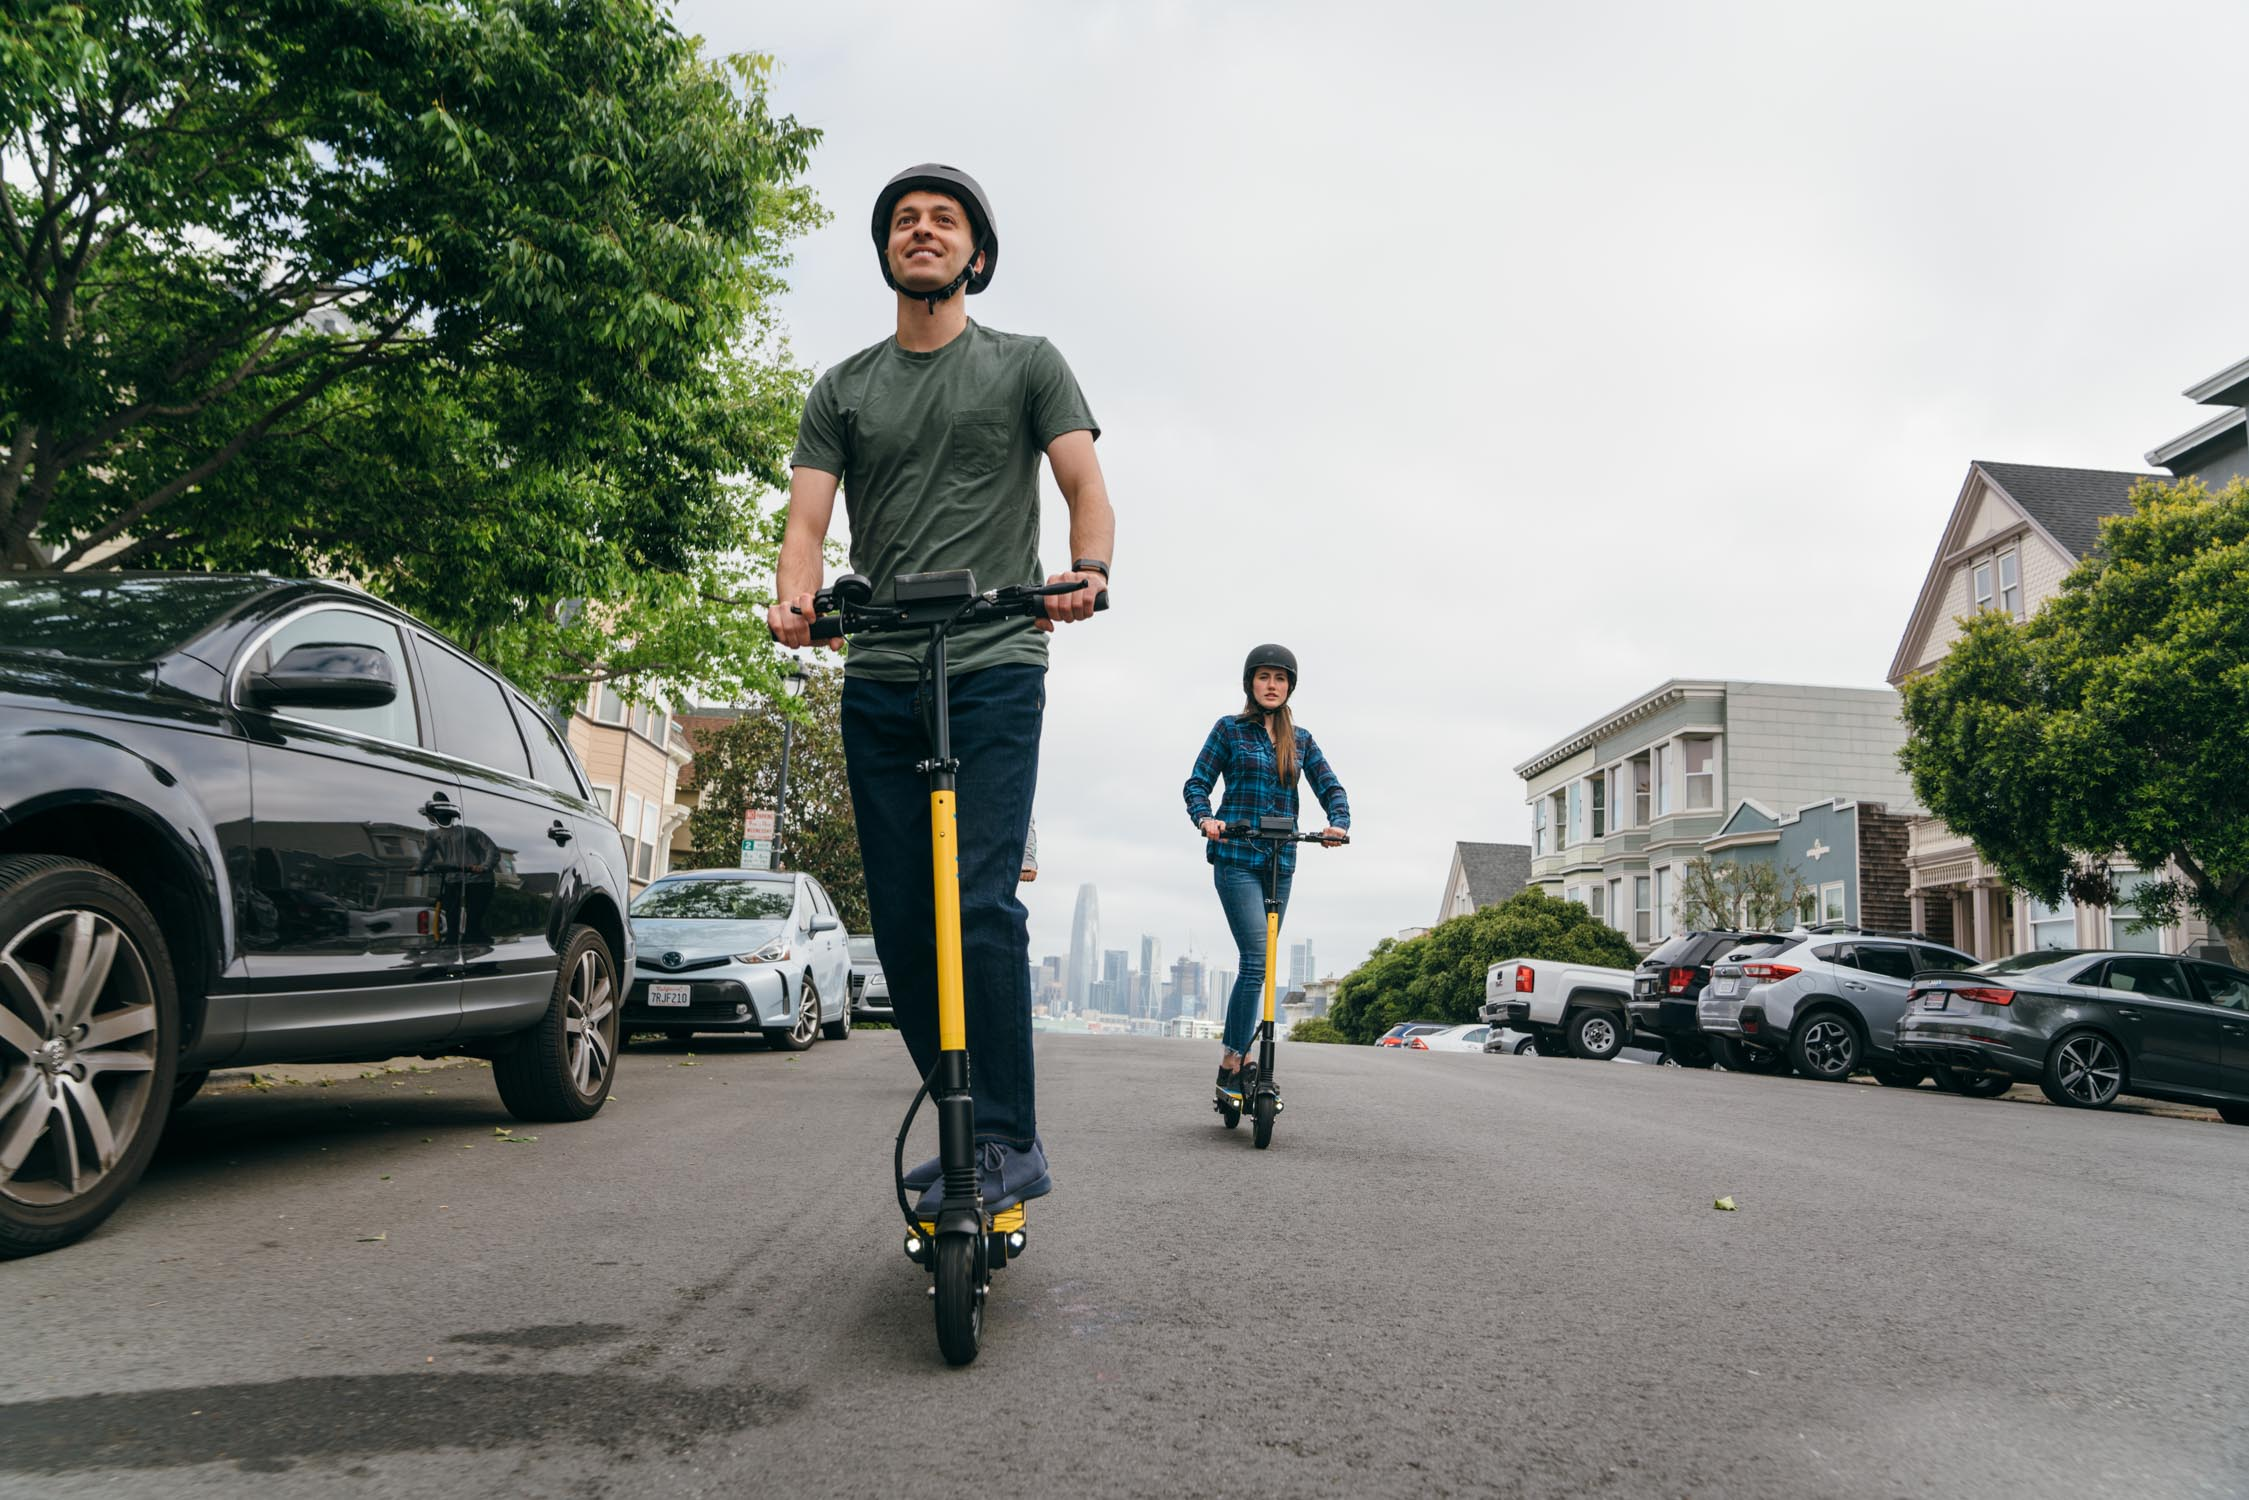 skip-scooter-ride